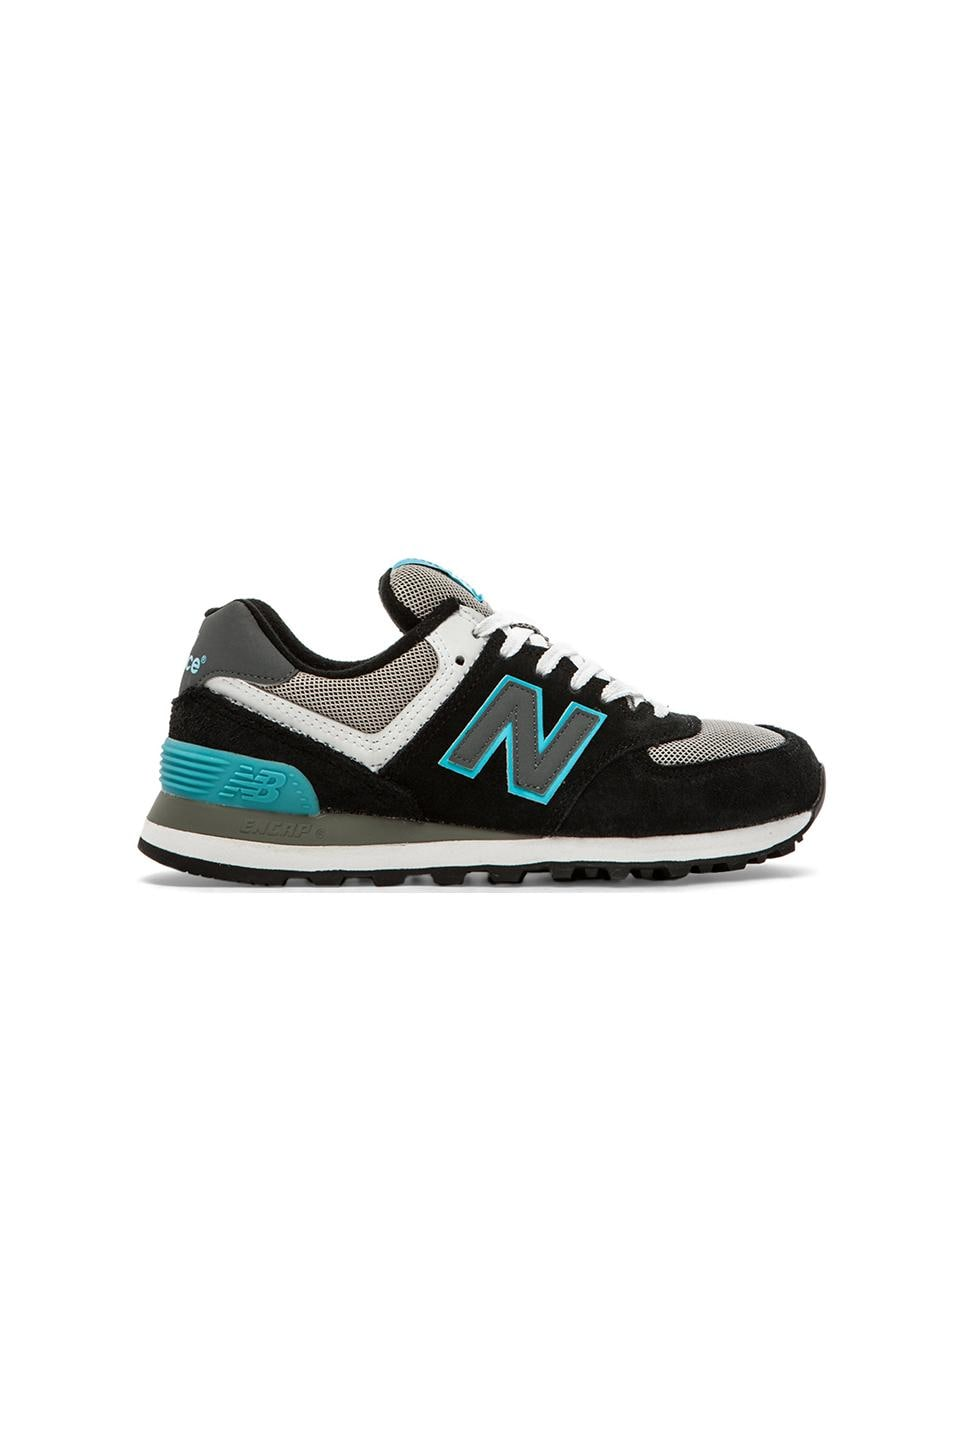 New Balance Core Plus Collection in Black & Blue